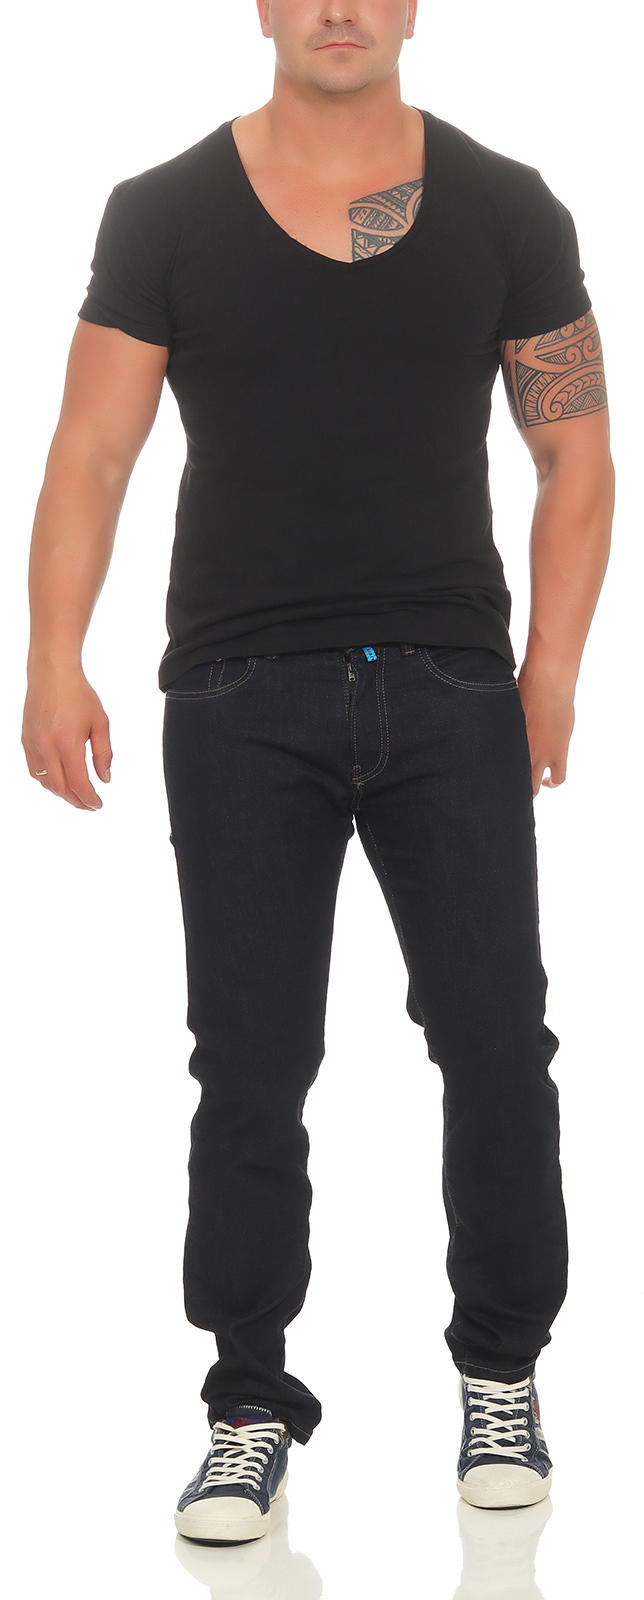 PIERRE-CARDIN-Herren-Jeans-Lyon-Hose-Tapered-Future-Flex-Super-Stretch-Premium-3 Indexbild 13